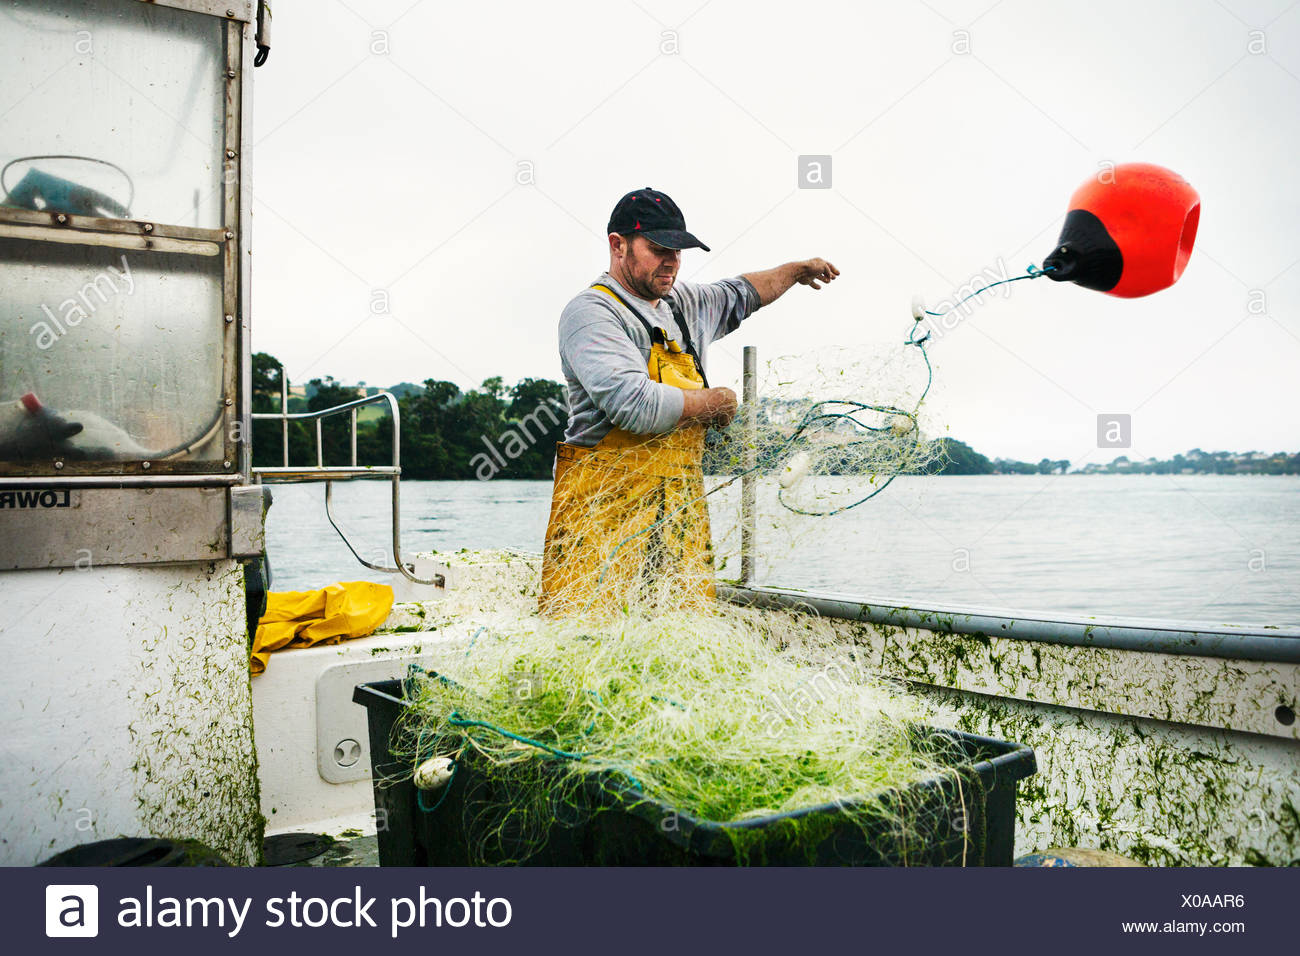 A fisherman standing on a boat throwing the floats out to spread the net over the water. - Stock Image